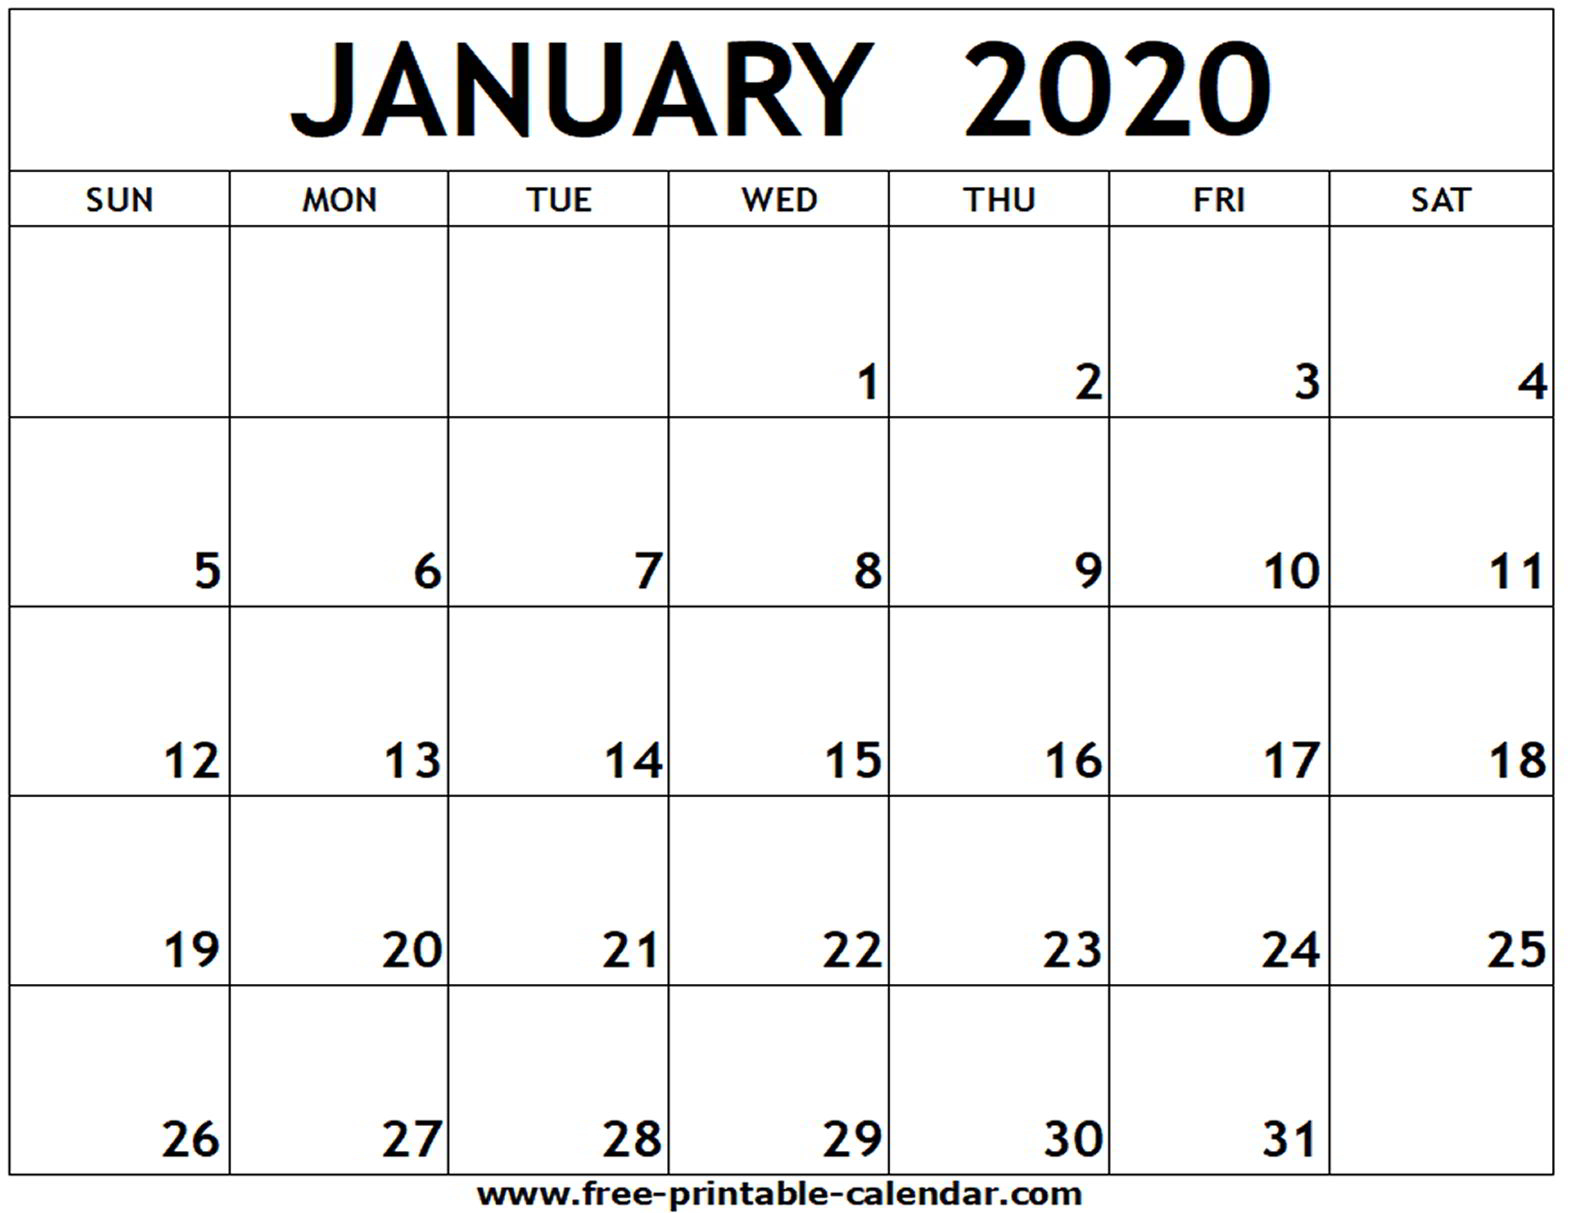 Free Printable Monthly Calendars 2020 - Wpa.wpart.co throughout 2020 Printable Monthly Calendar Free Vertex